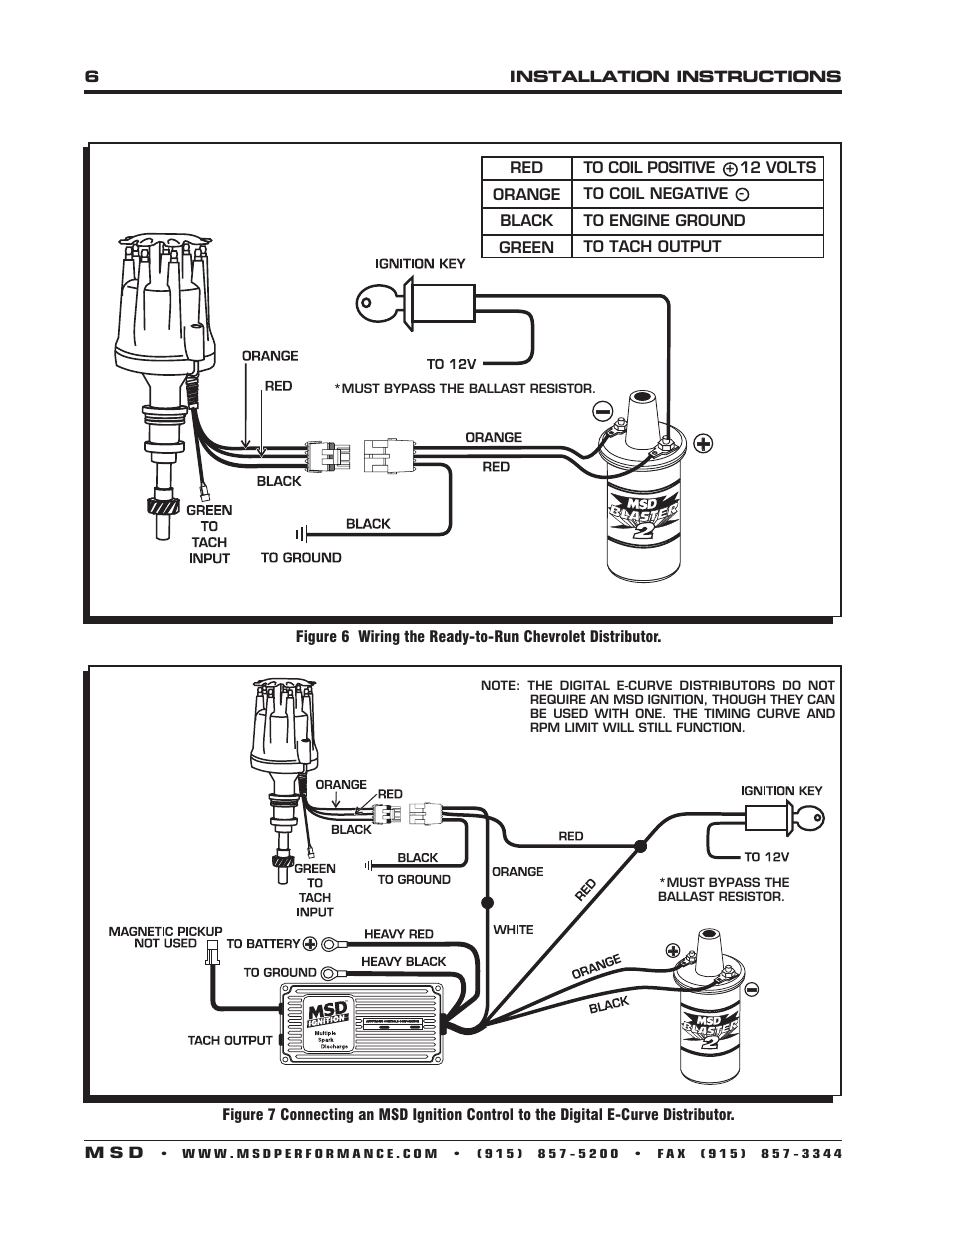 ford 302 ignition wiring diagram ford 302 clutch diagram wiring Ford 302 Distributor Wiring Harness ford 302 distributor wiring